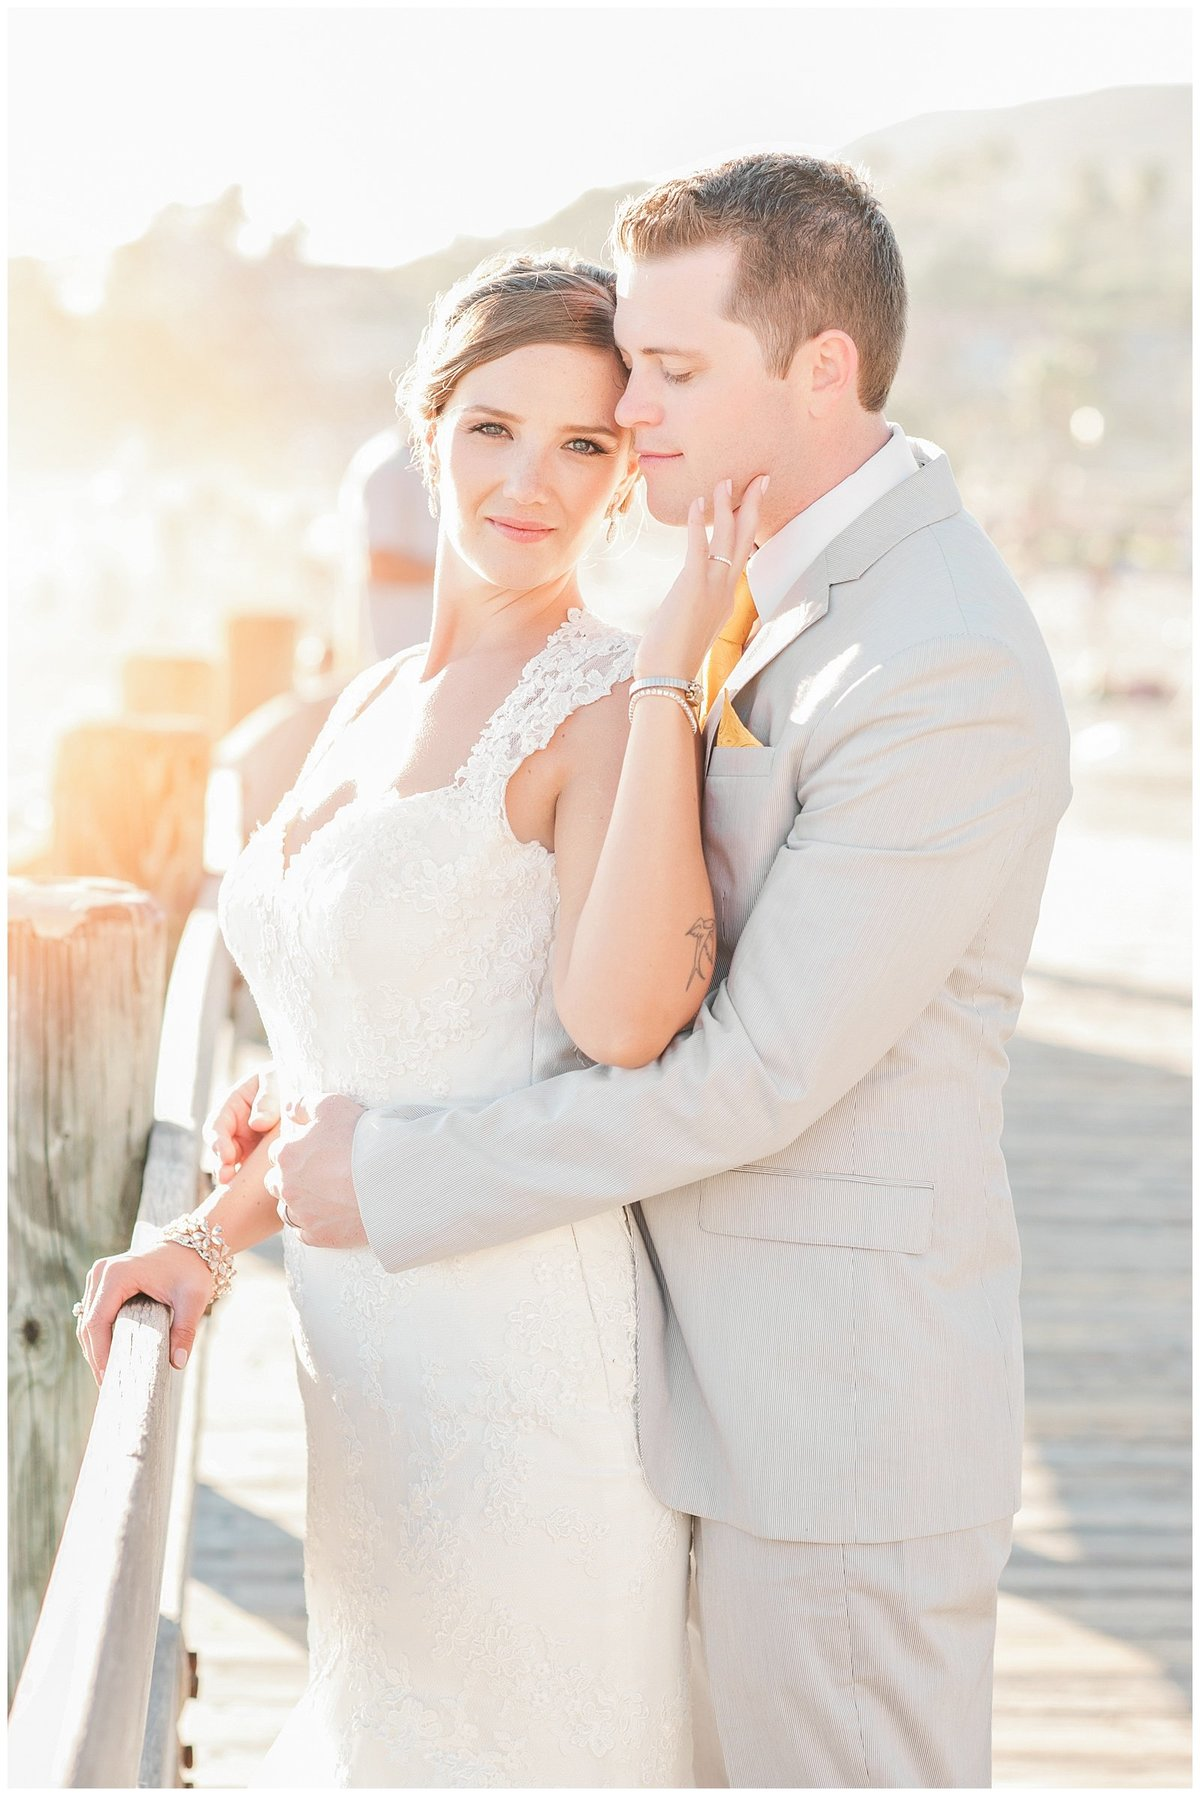 san diego beach wedding romantic light airy mermaid dress photos023